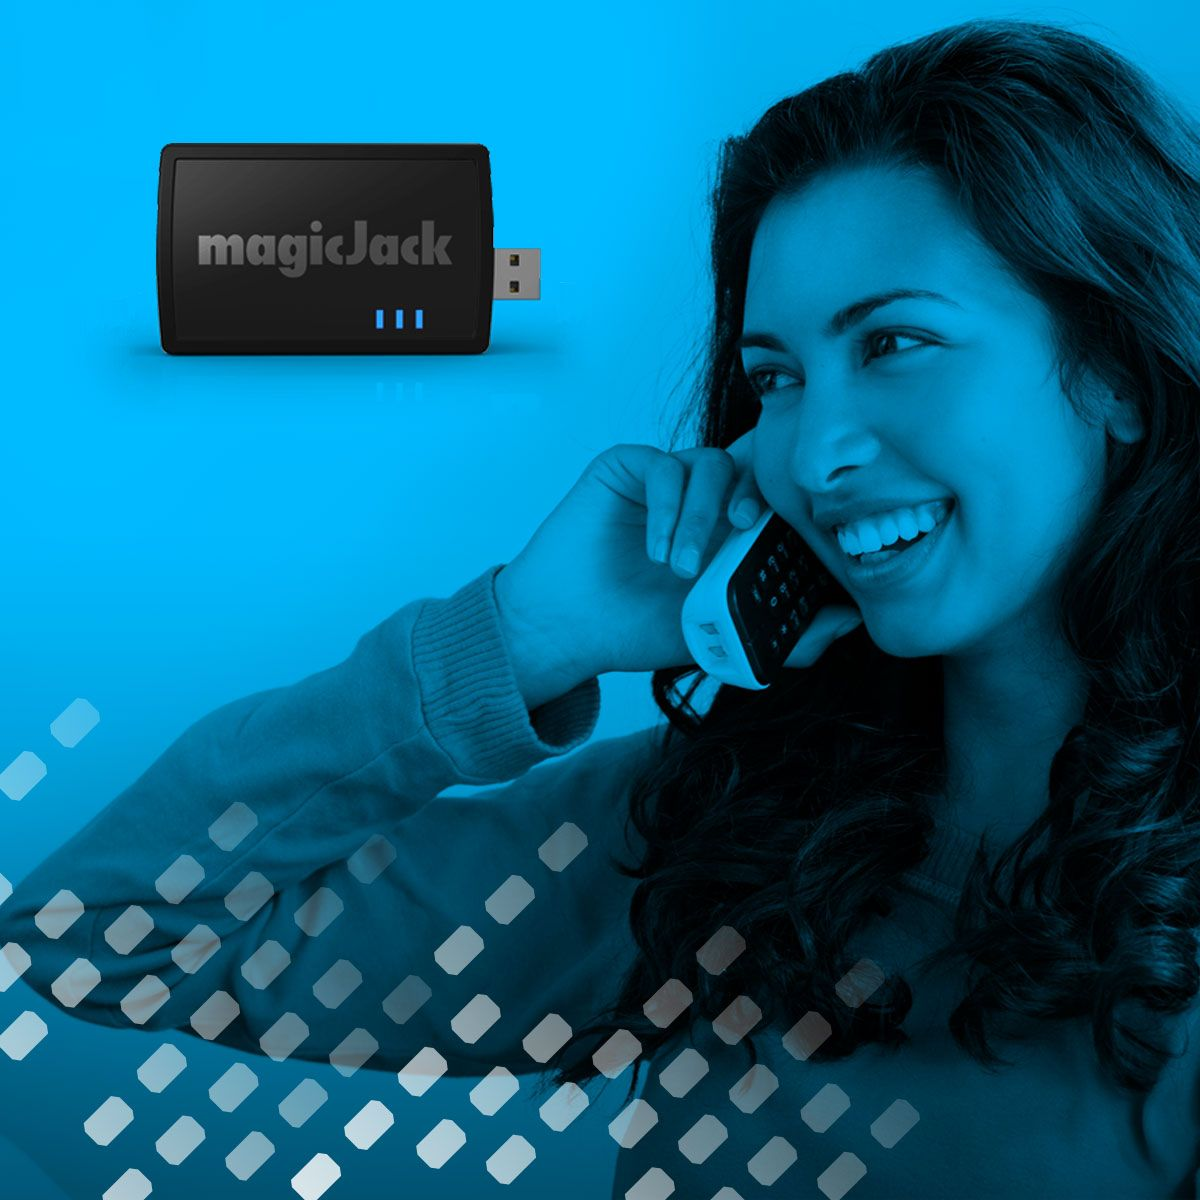 With a magicJack PLUS, you can make UNLIMITED local & long